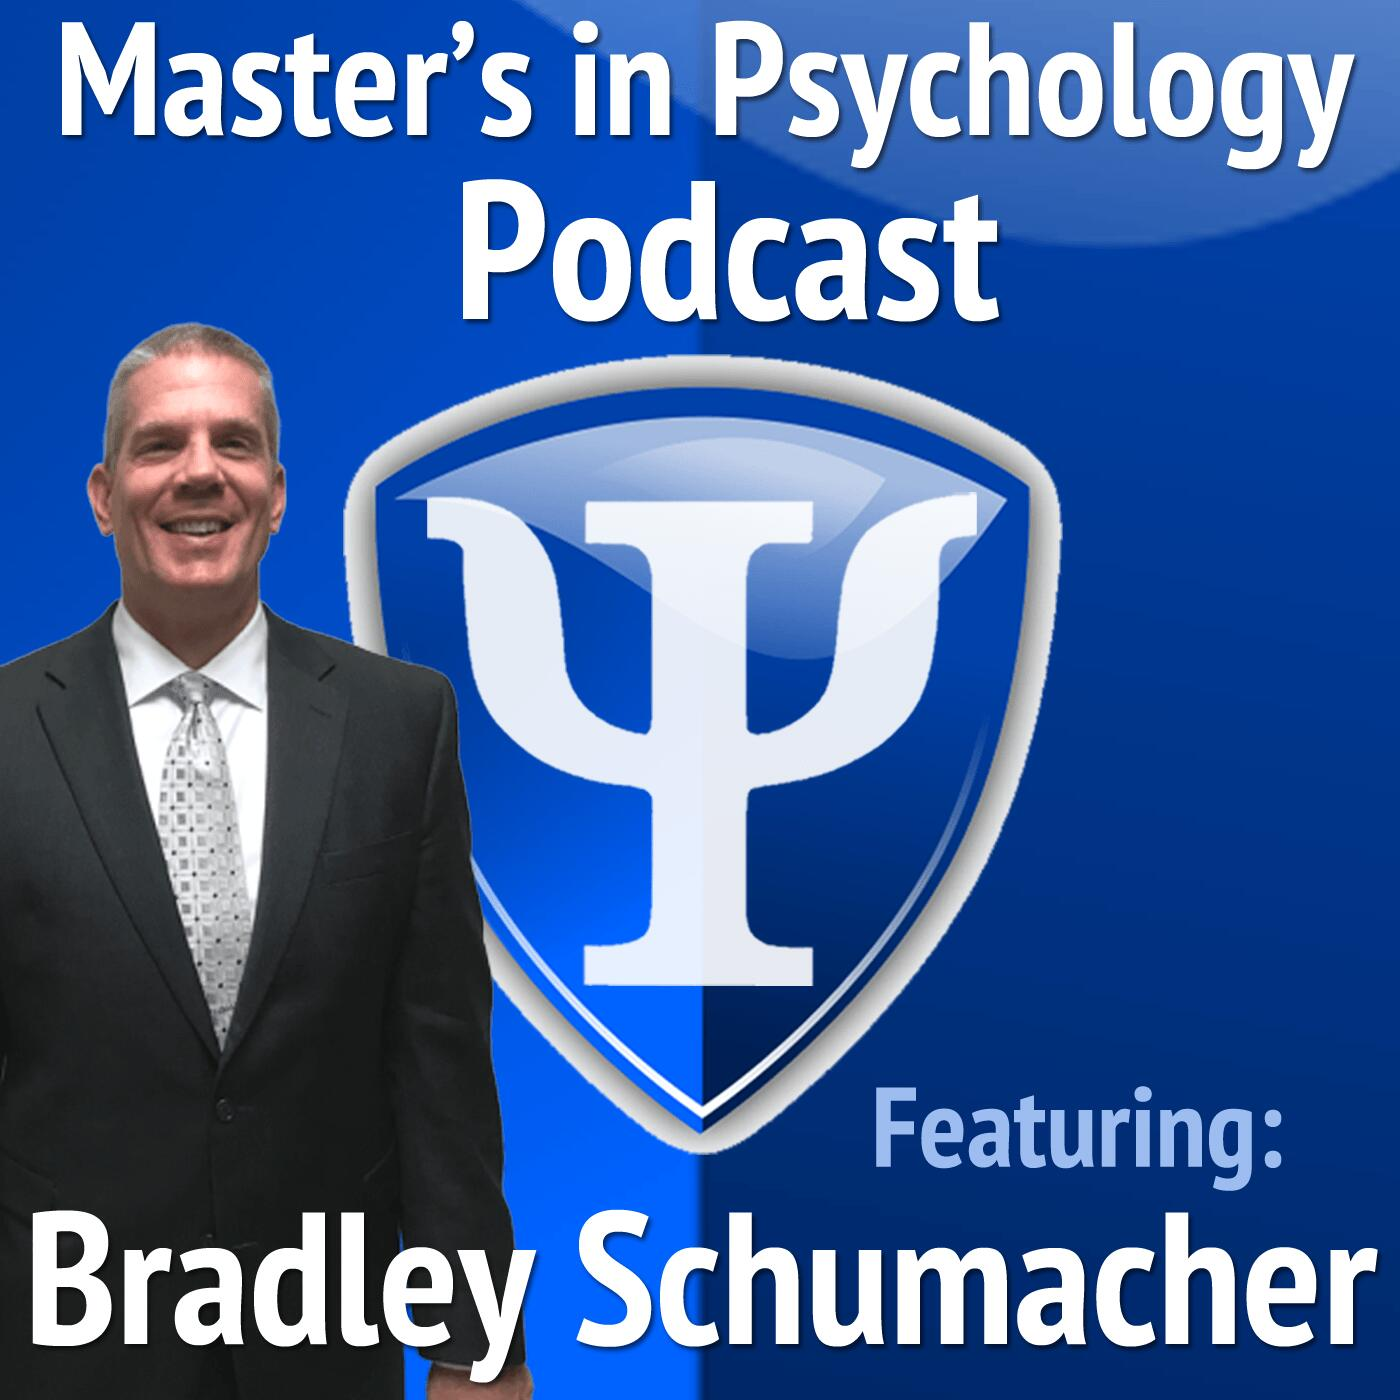 Masters in Psychology Podcast